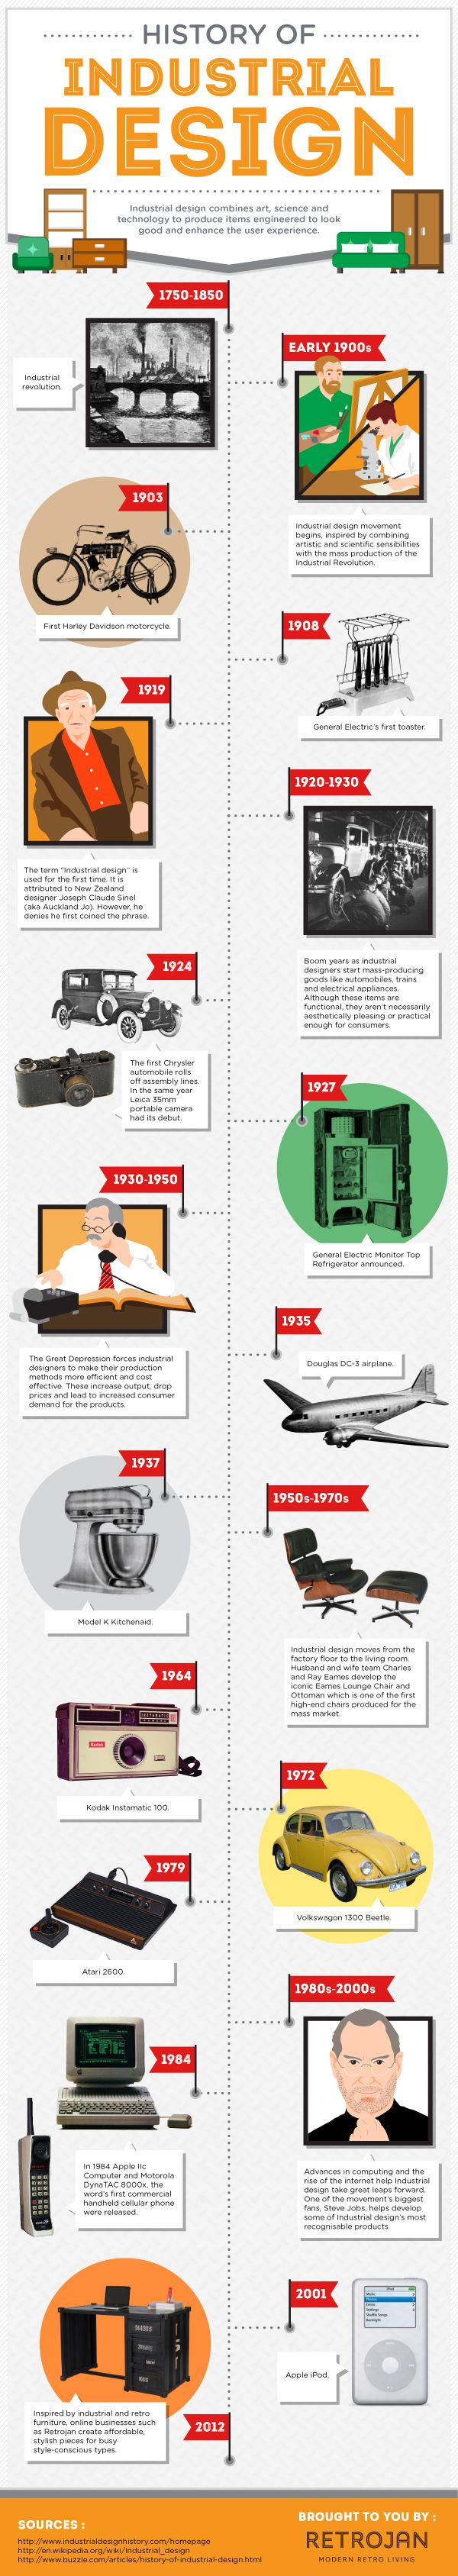 Industrial Design is a term that gets thrown around a fair bit – but there's a lot more to the story than sleek chairs and guys in thick glasses. The history of Industrial Design is a rollicking tale of war, politics, iPods and furniture.    It's so interesting we've created an infographic charting the story of Industrial Design and how it relates to our range of retro furniture industrial furniture. You'll never look at our furniture collection the same way again.